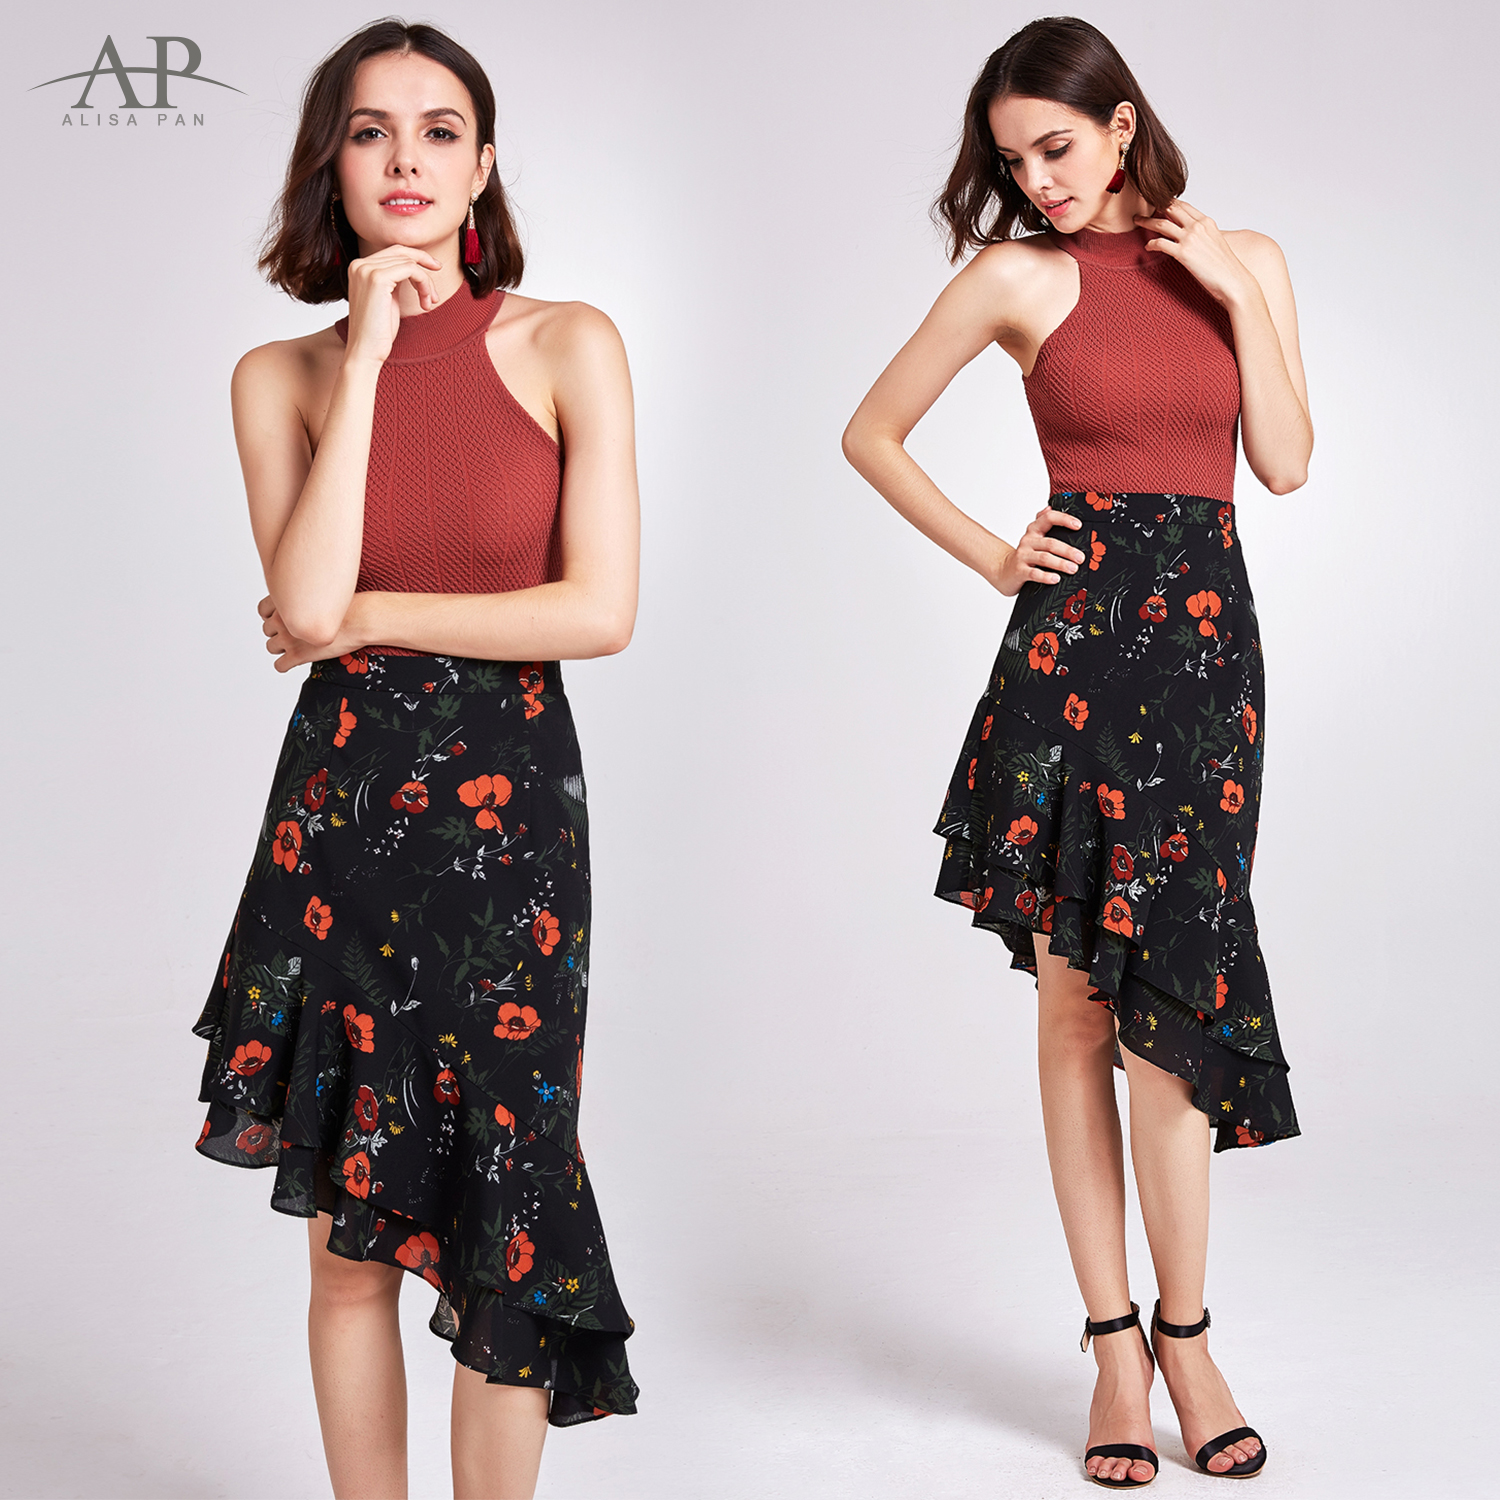 Waisted high floral skirt exclusive photo